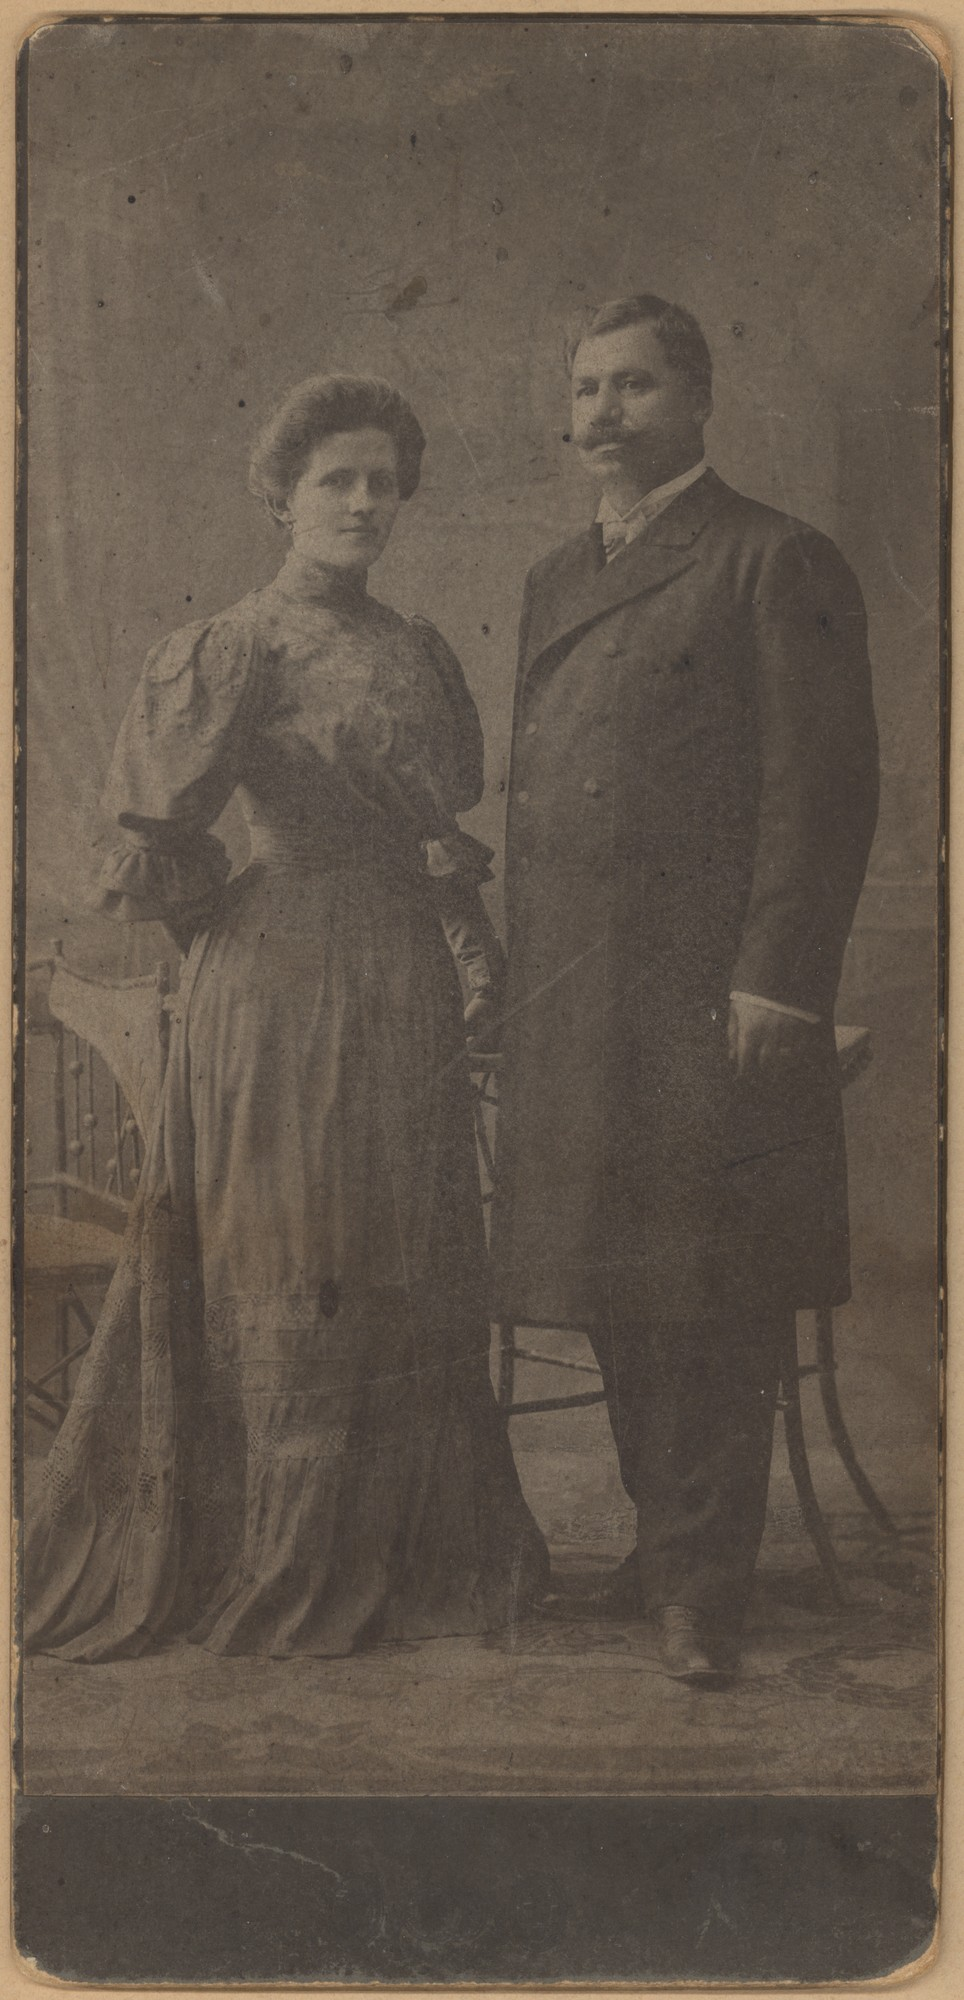 Studio portrait of Stefana and Nikola Porkov, © State Archives - Plovdiv